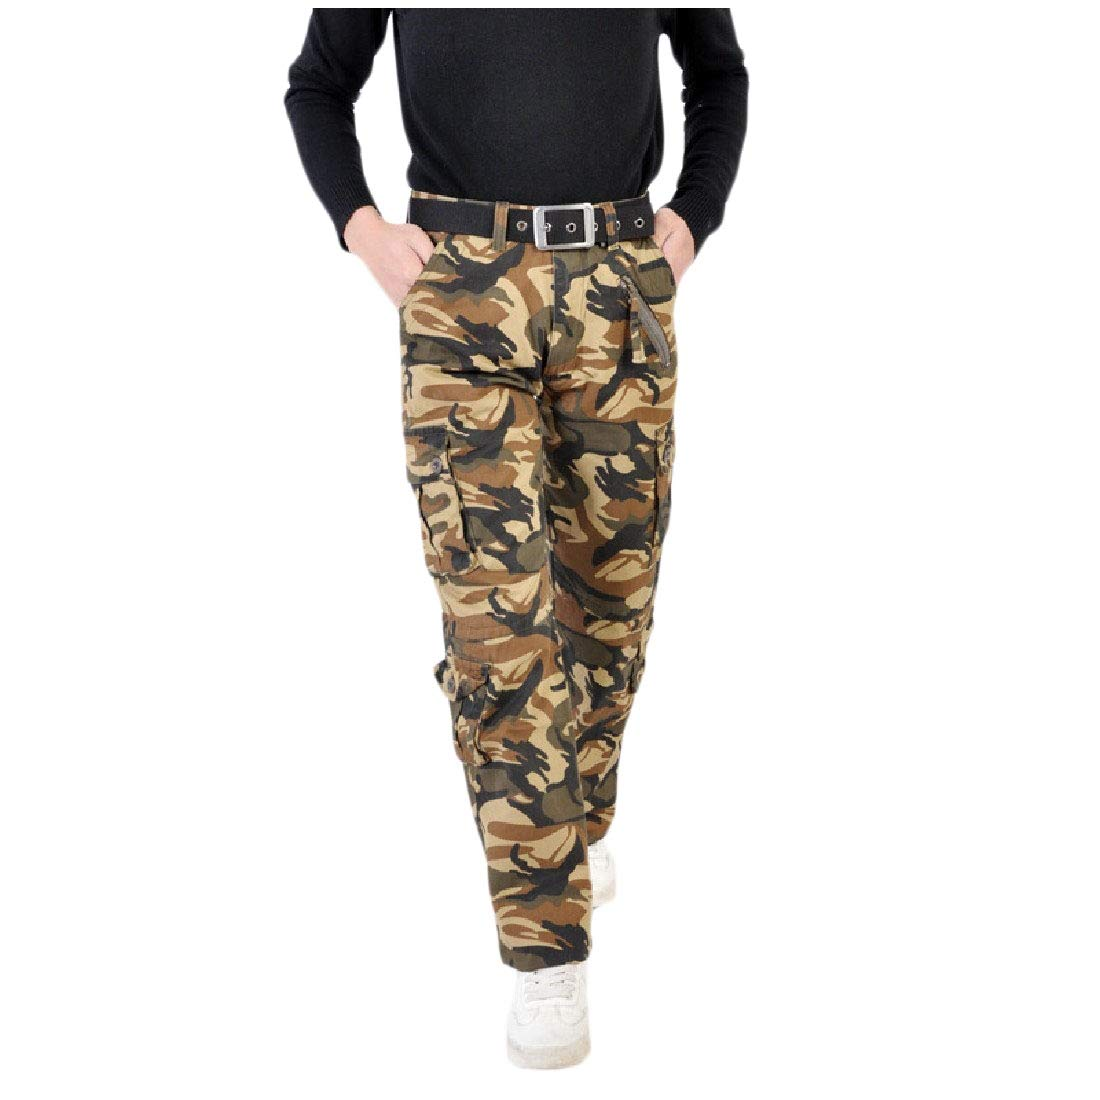 YUNY Mens Baggy Solid High Rise Cotton Outdoor Camo Print Jogger Pant AS2 34